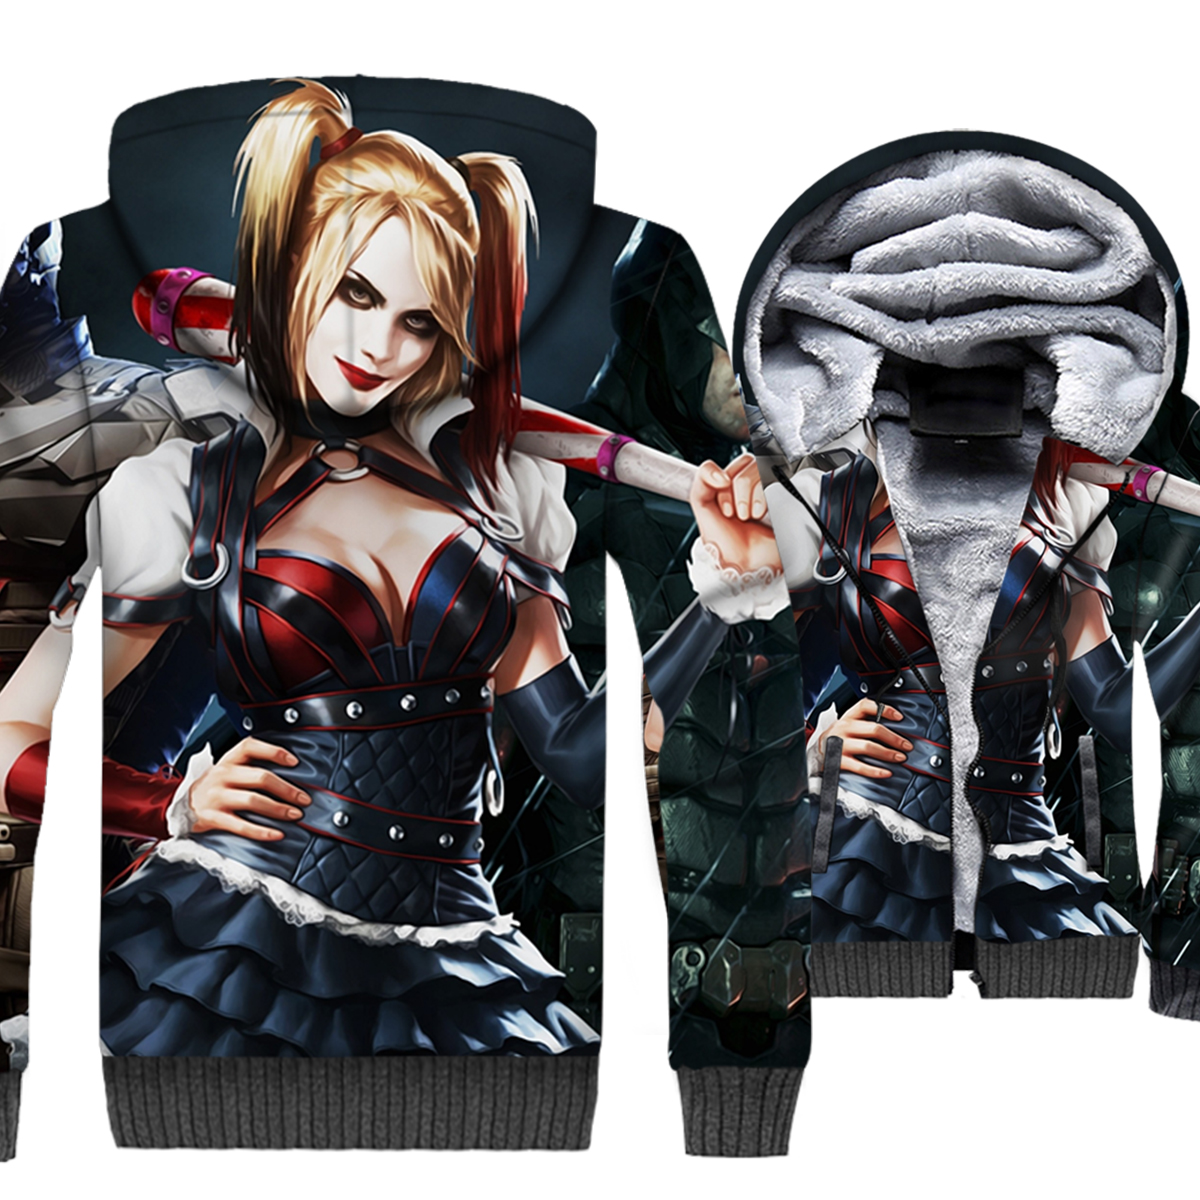 Batman 3D Wonder Woman Hoodies Suicide Squad Harley Quinn Sweatshirts Catwoman Coats Winter Fleece Injustice League Cool Jackets